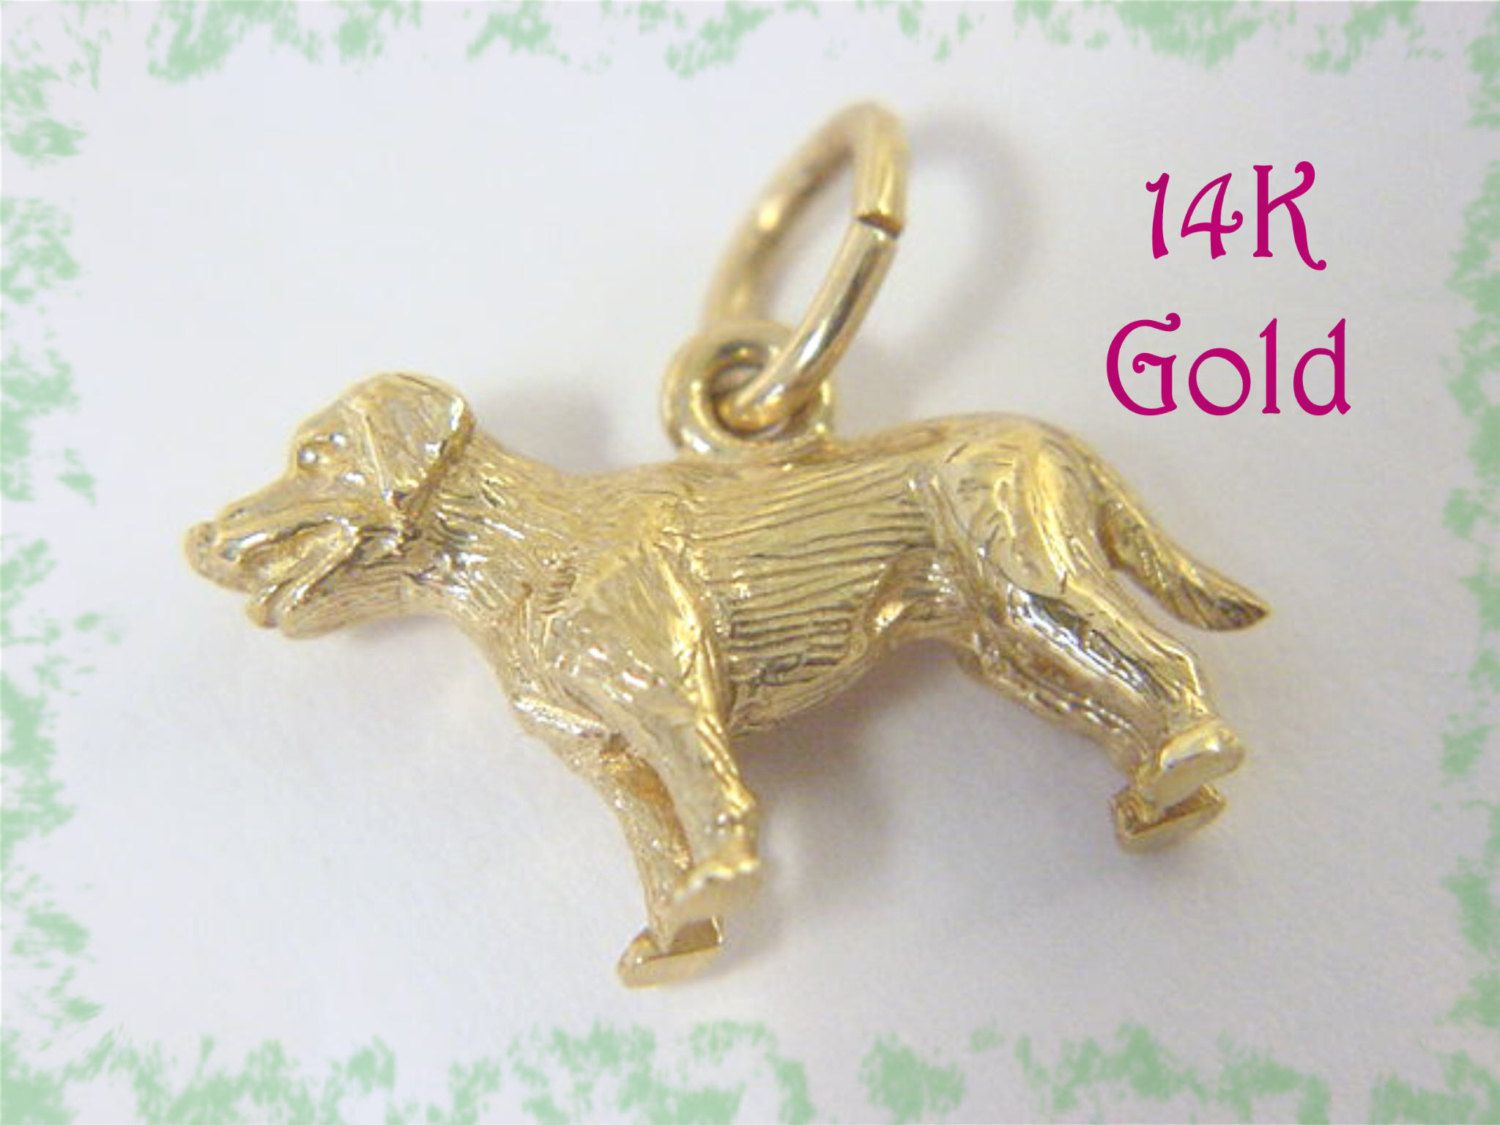 14k Gold Labrador Retriever Dog Charm Pendant Golden Yellow